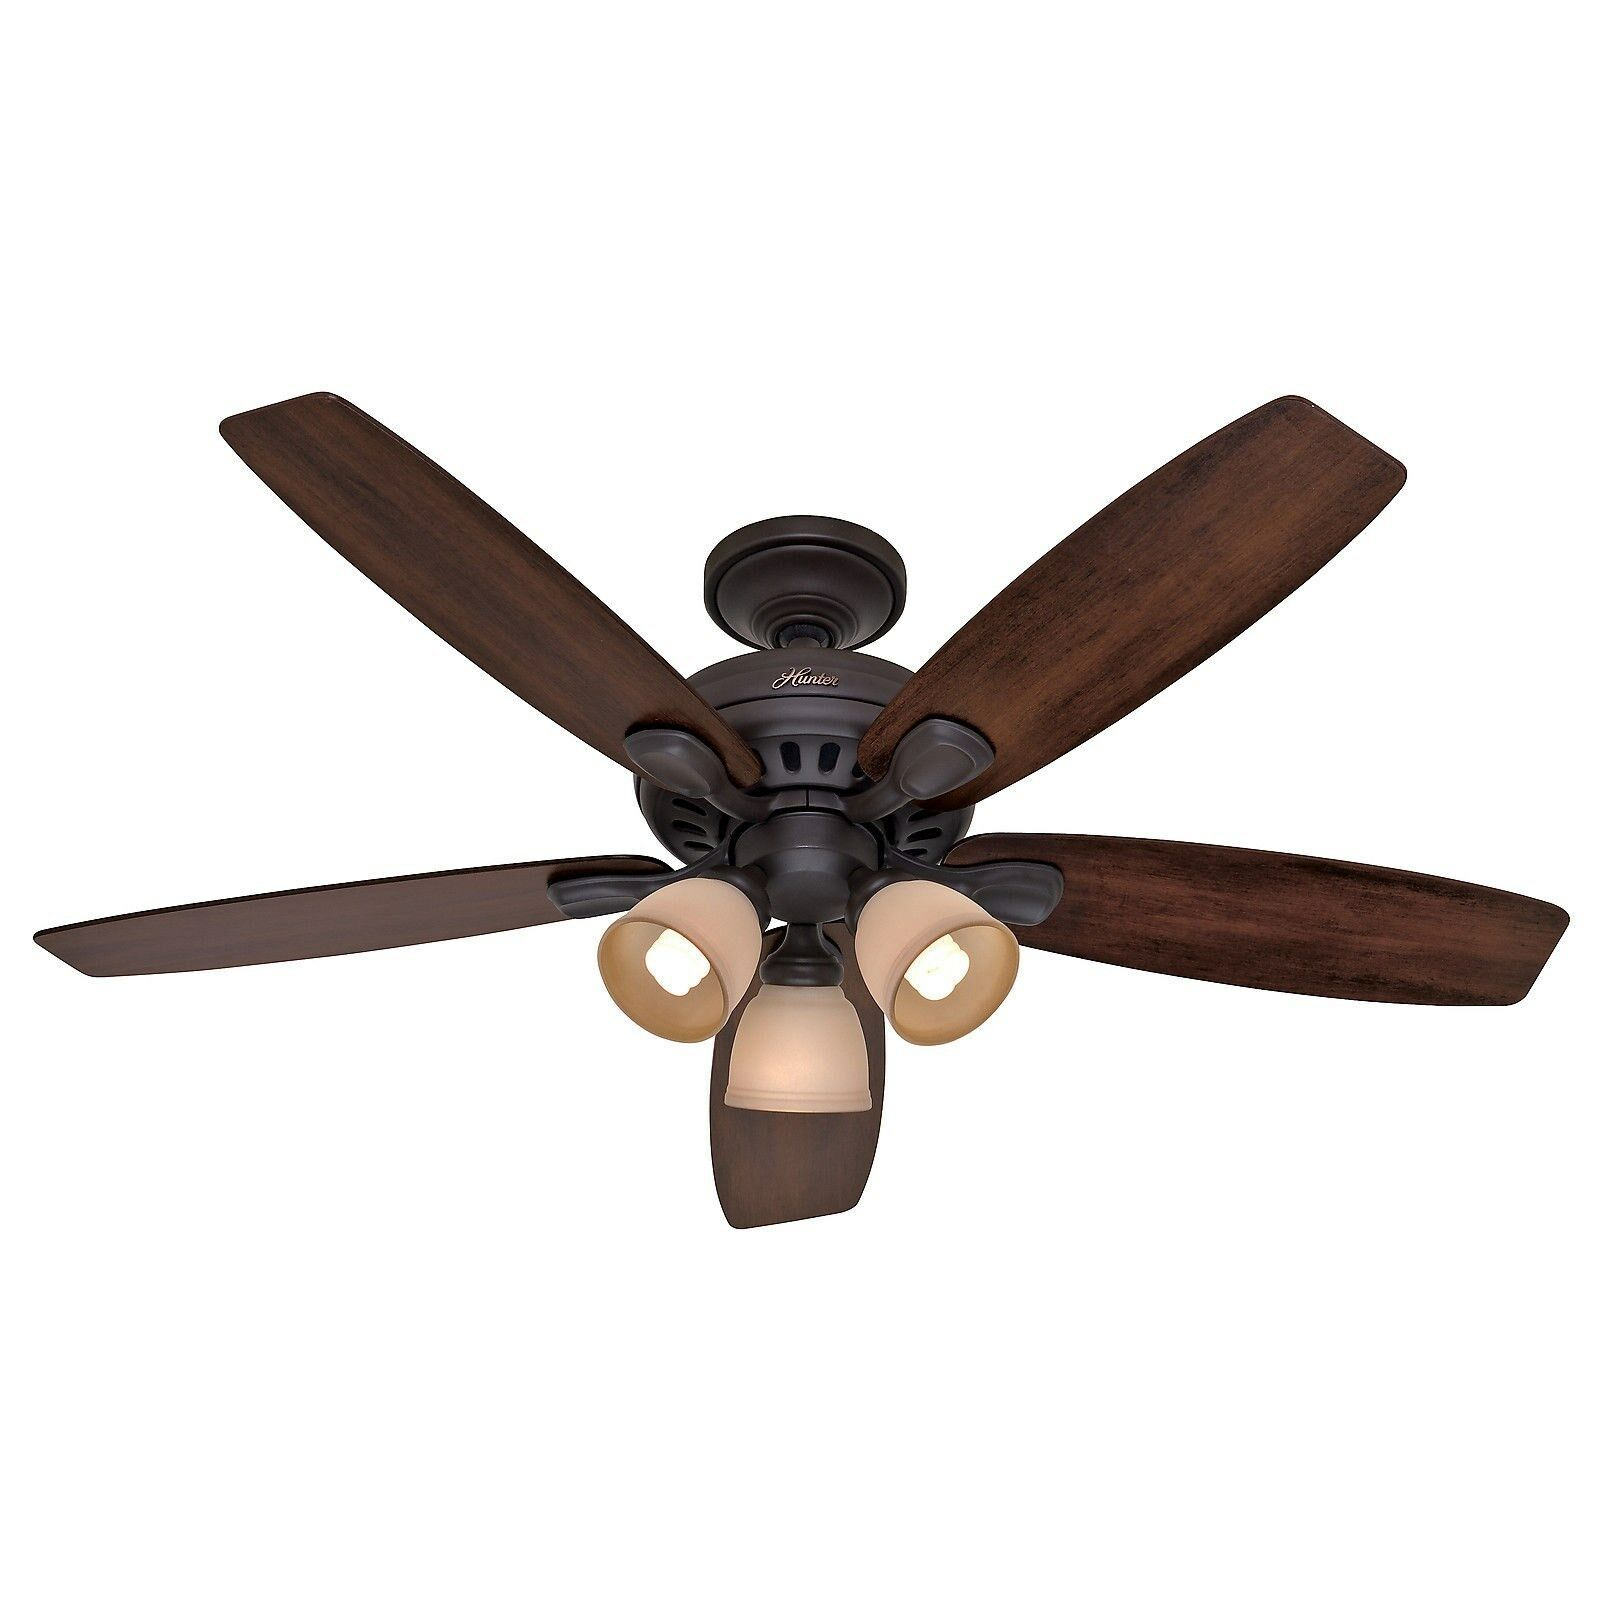 Ceiling fan remote control system